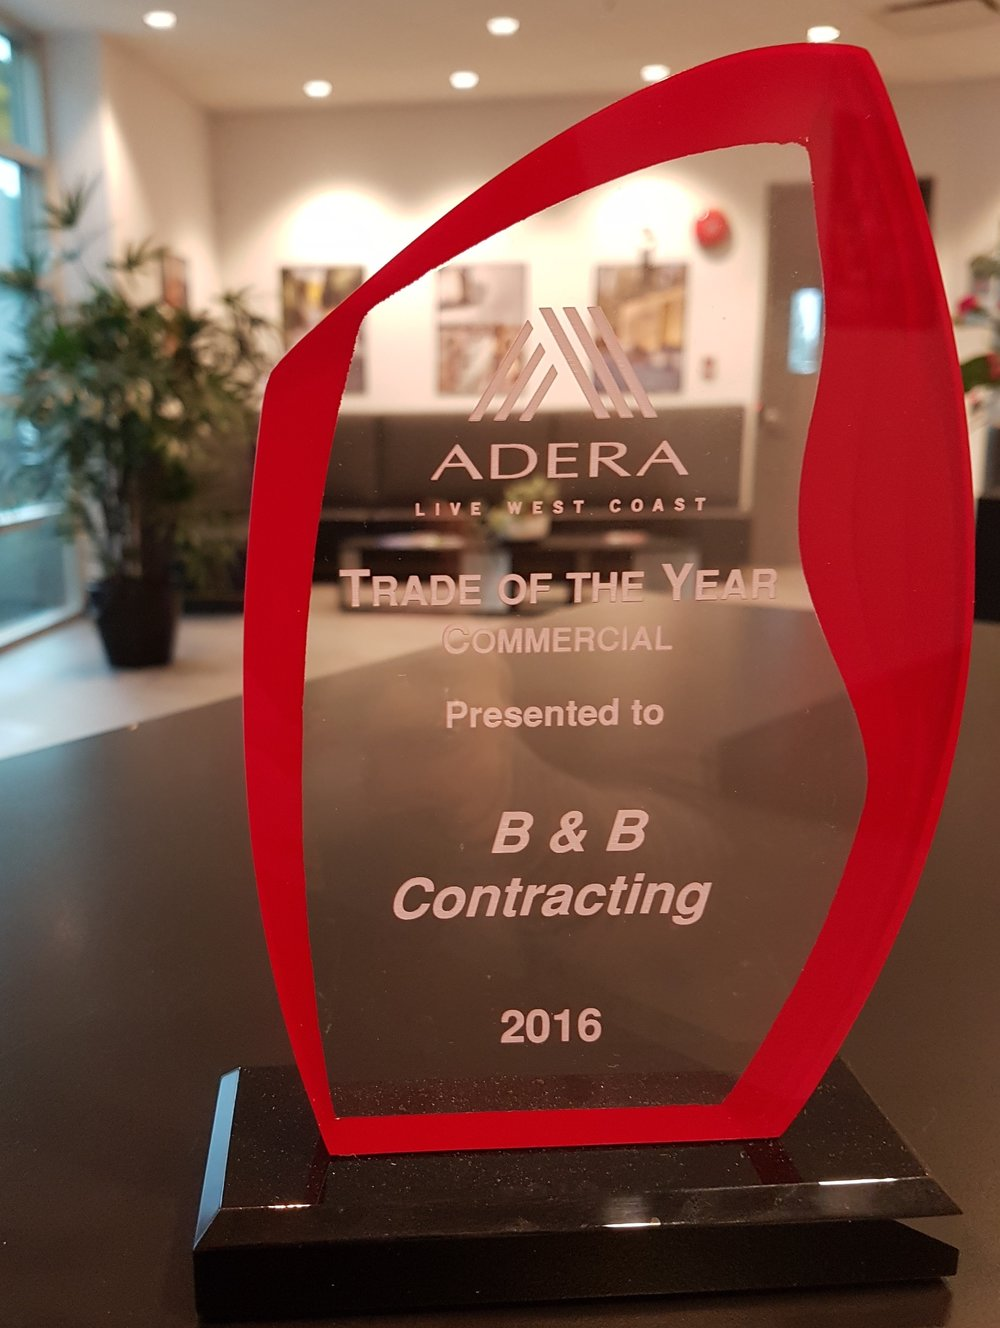 Adera Live West Coast  - B&B Contracting Award.jpg